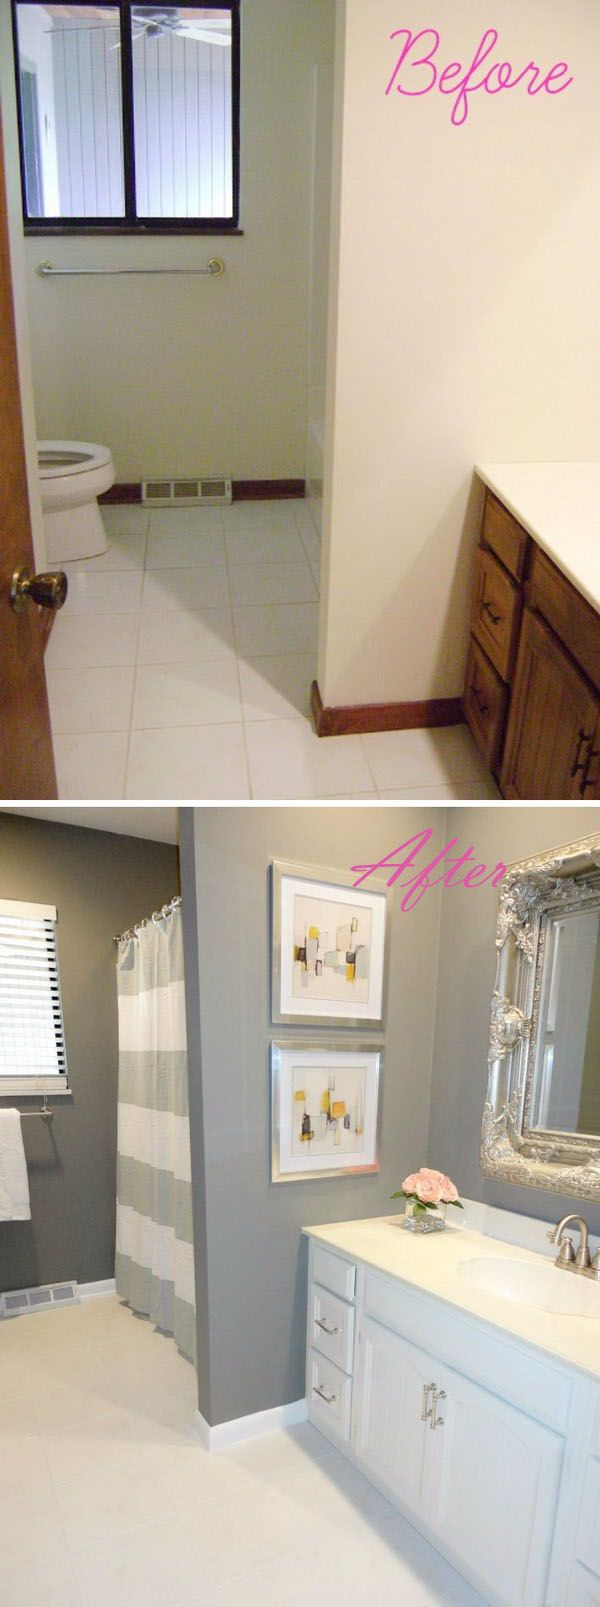 Gallery For Photographers before and after bathroom remodel bathroom renovation bathroom design bath interior design